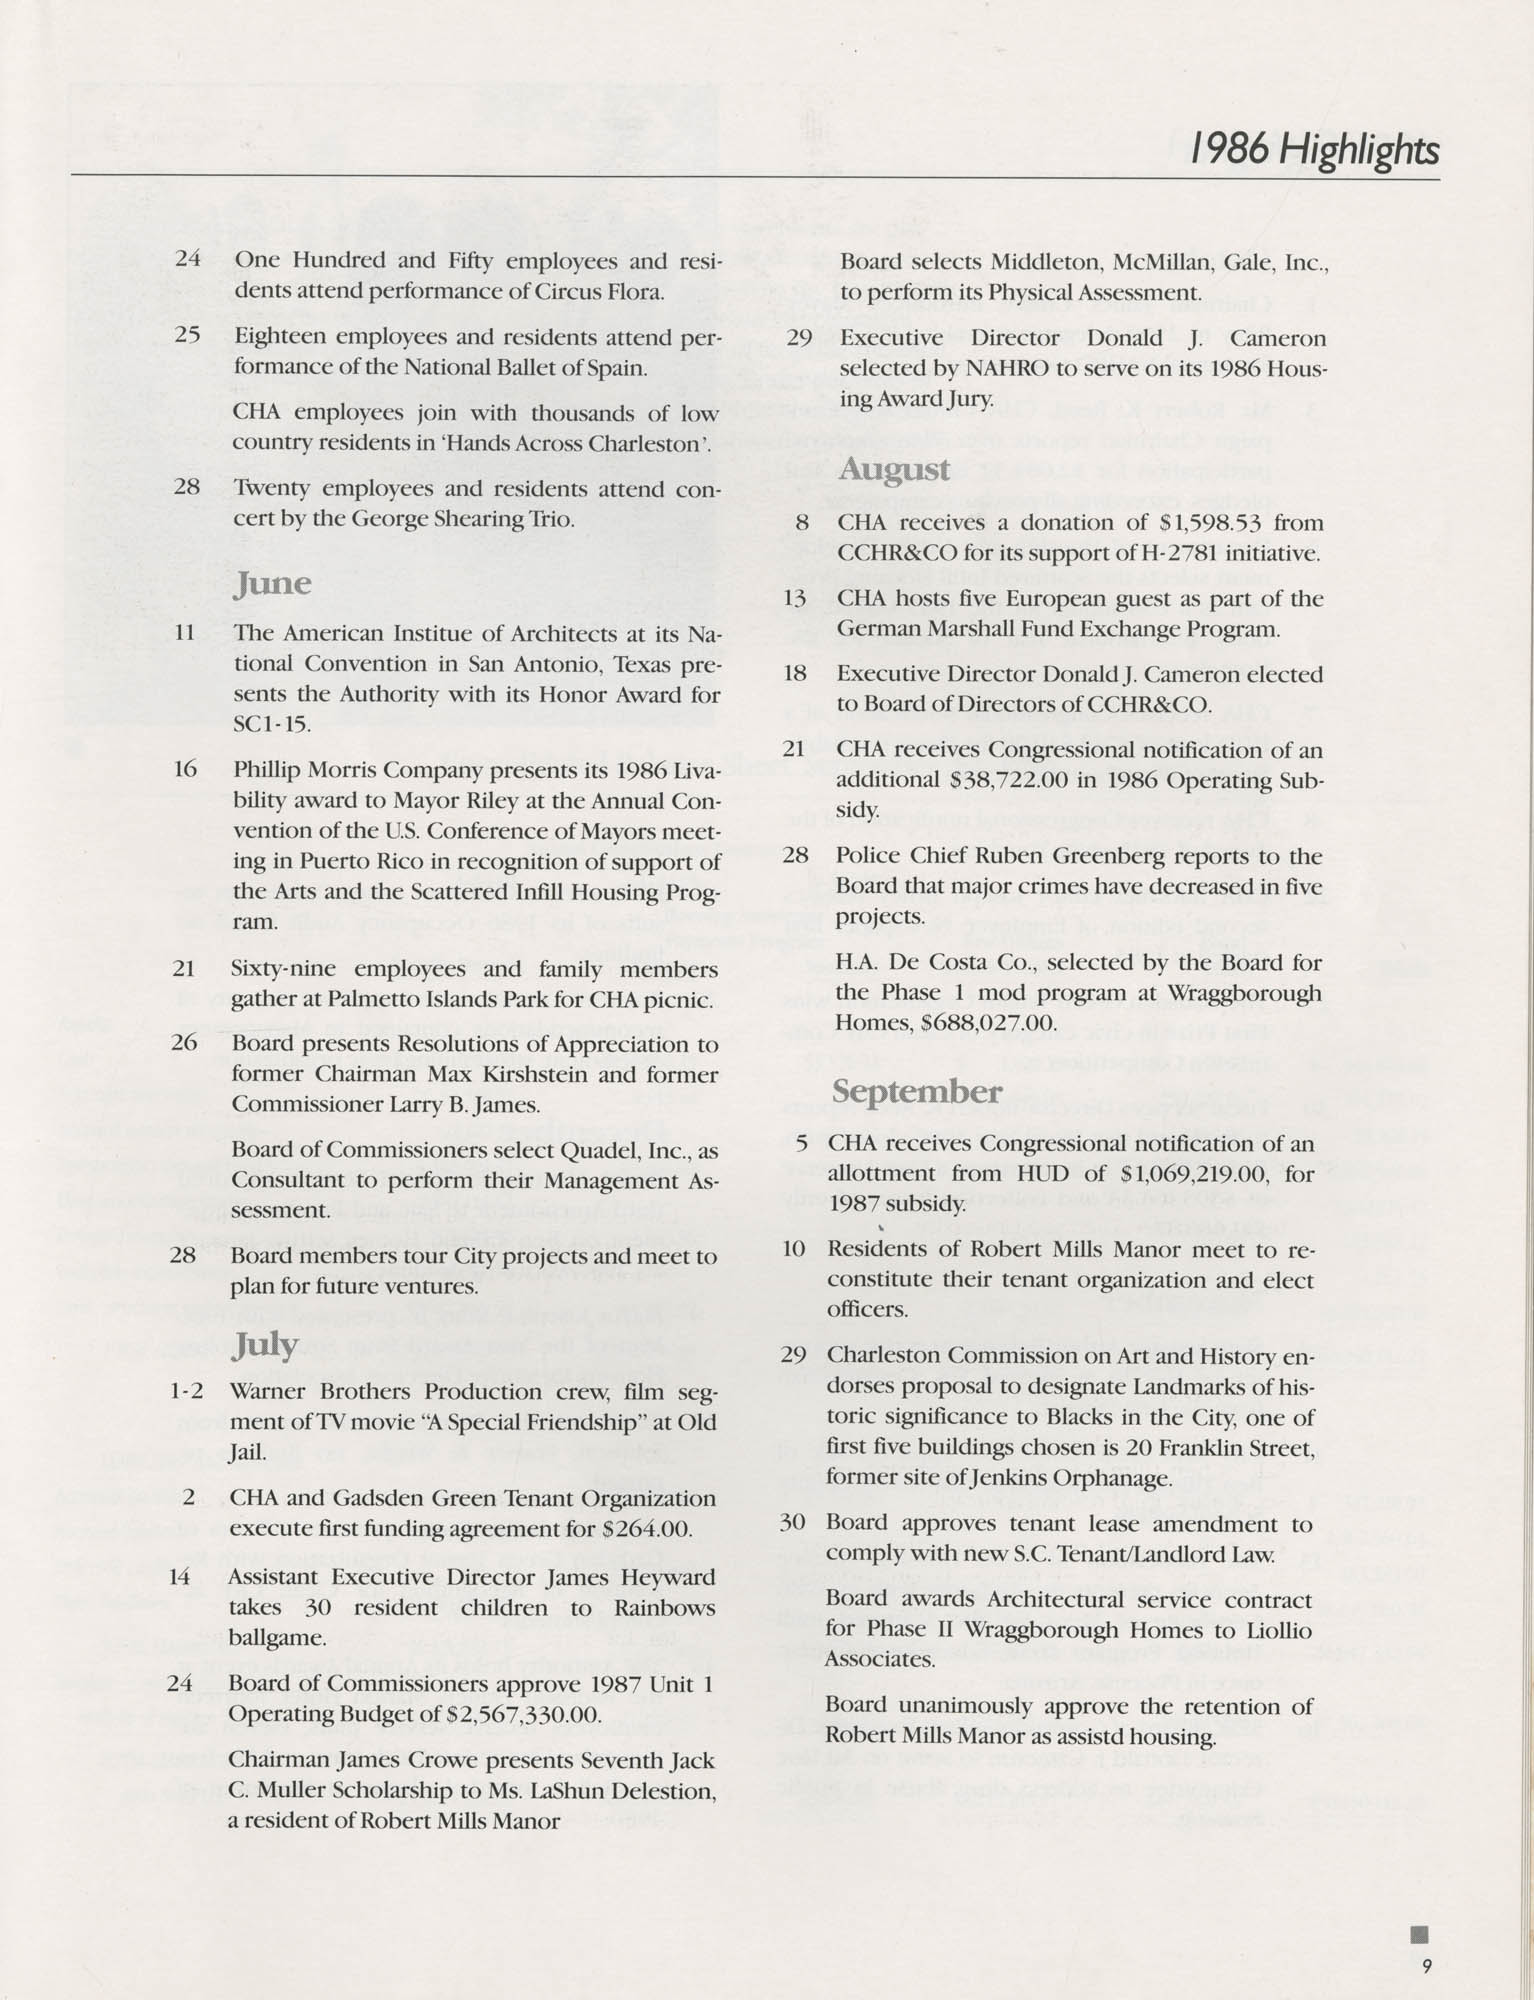 1986 Annual Report, The Housing Authority of the City of Charleston, Page 9